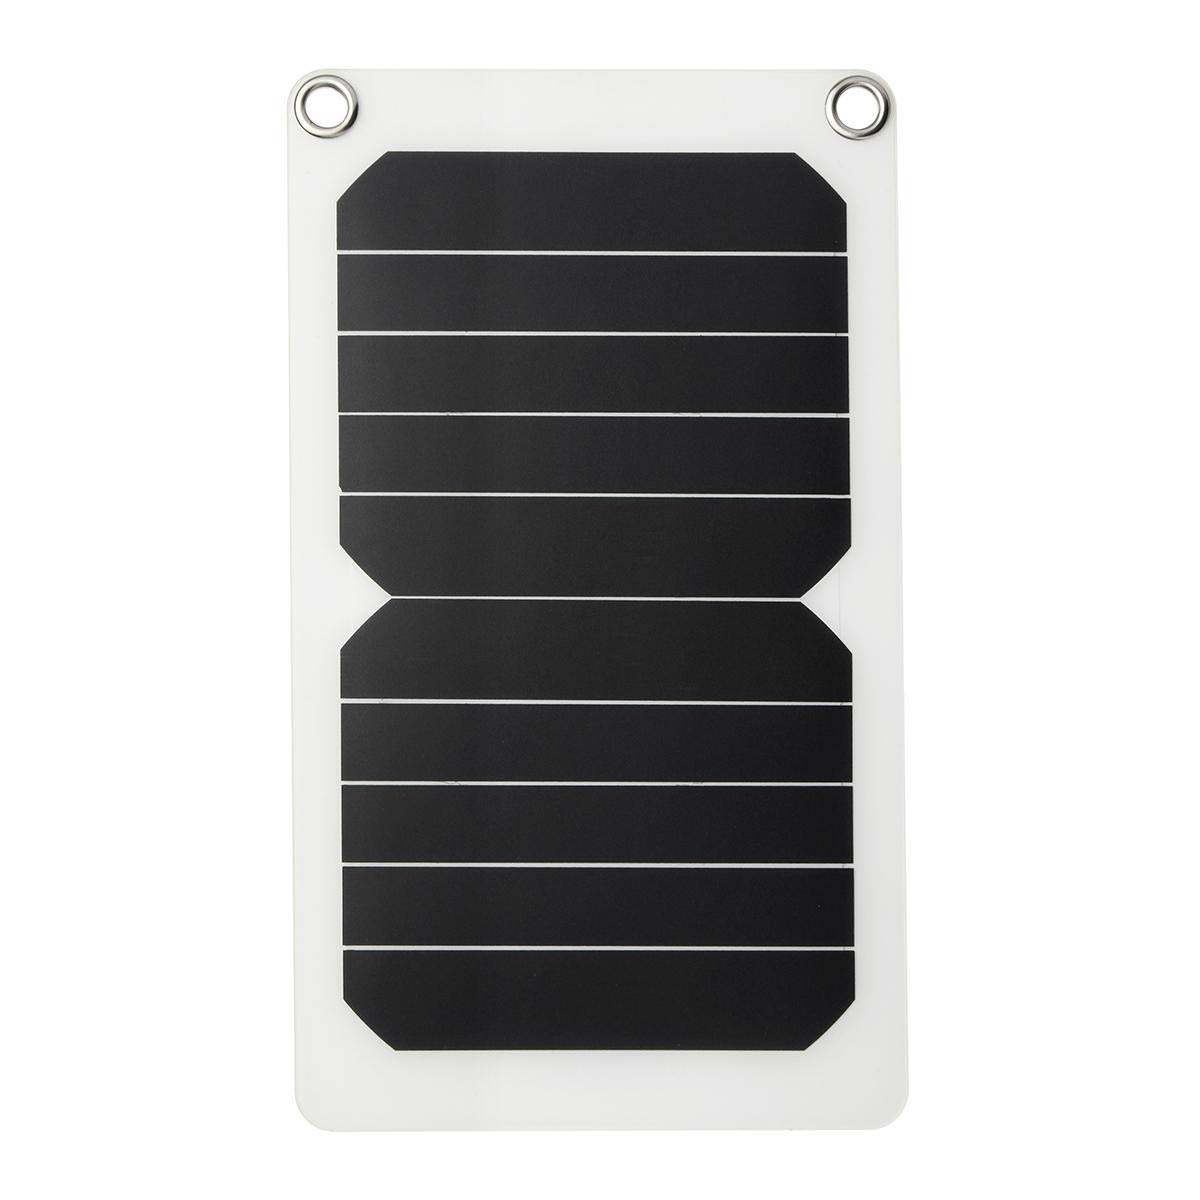 6V 10W 1.7A Portable Solar Panel USB Solar Charging Board Charger - Electrical Equipment & Supplies Generator & Supplies - (Type 1) - 1 x Solar Panel